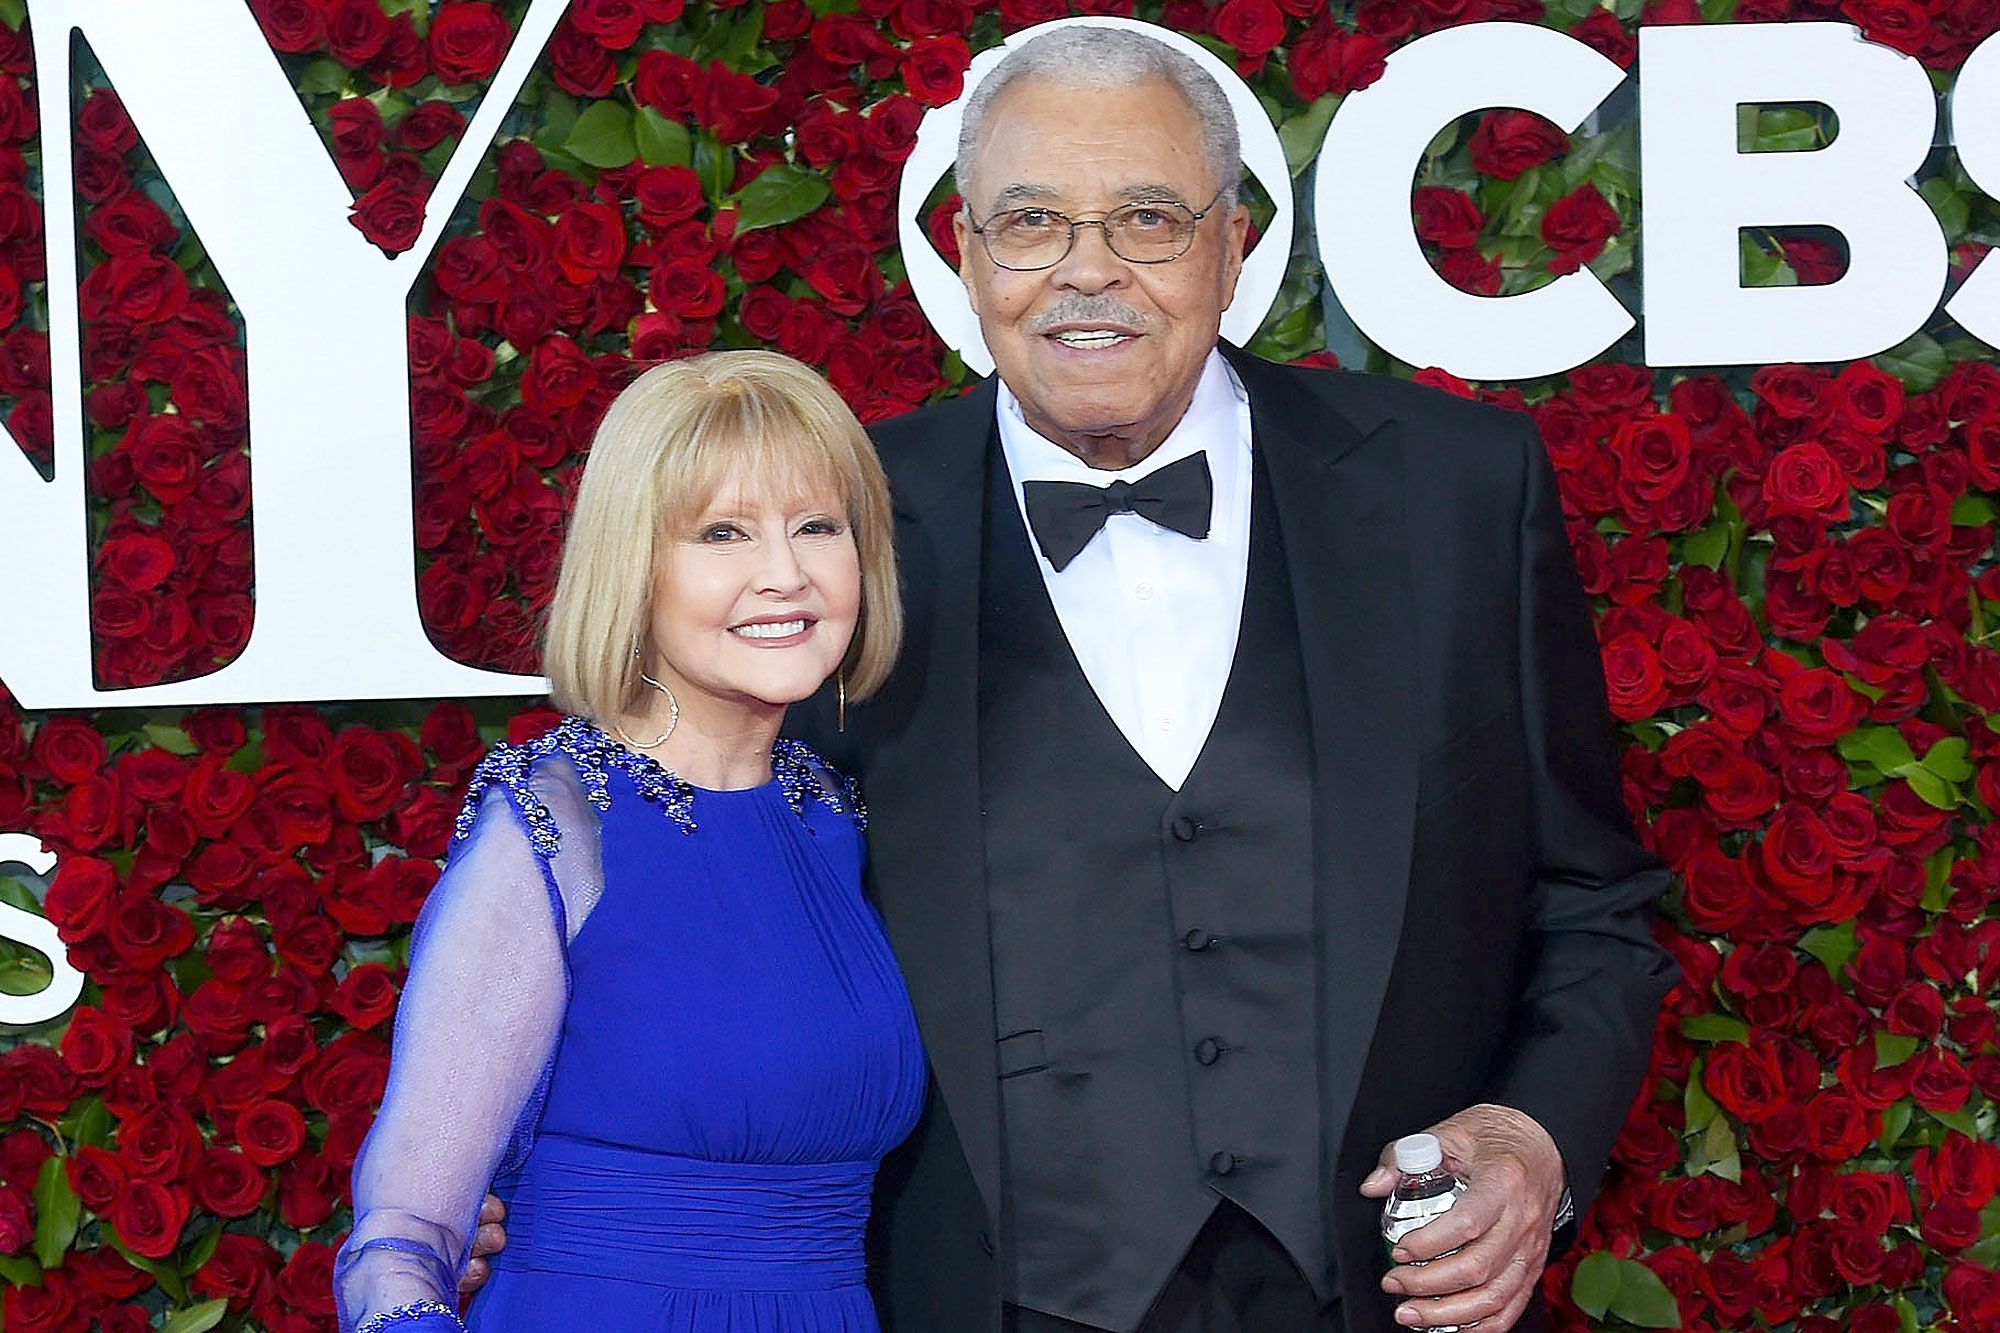 NEW YORK, NY - JUNE 12: Actors Cecilia Hart (L) and James Earl Jones attend the 70th Annual Tony Awards at The Beacon Theatre on June 12, 2016 in New York City. (Photo by Ben Gabbe/Getty Images)